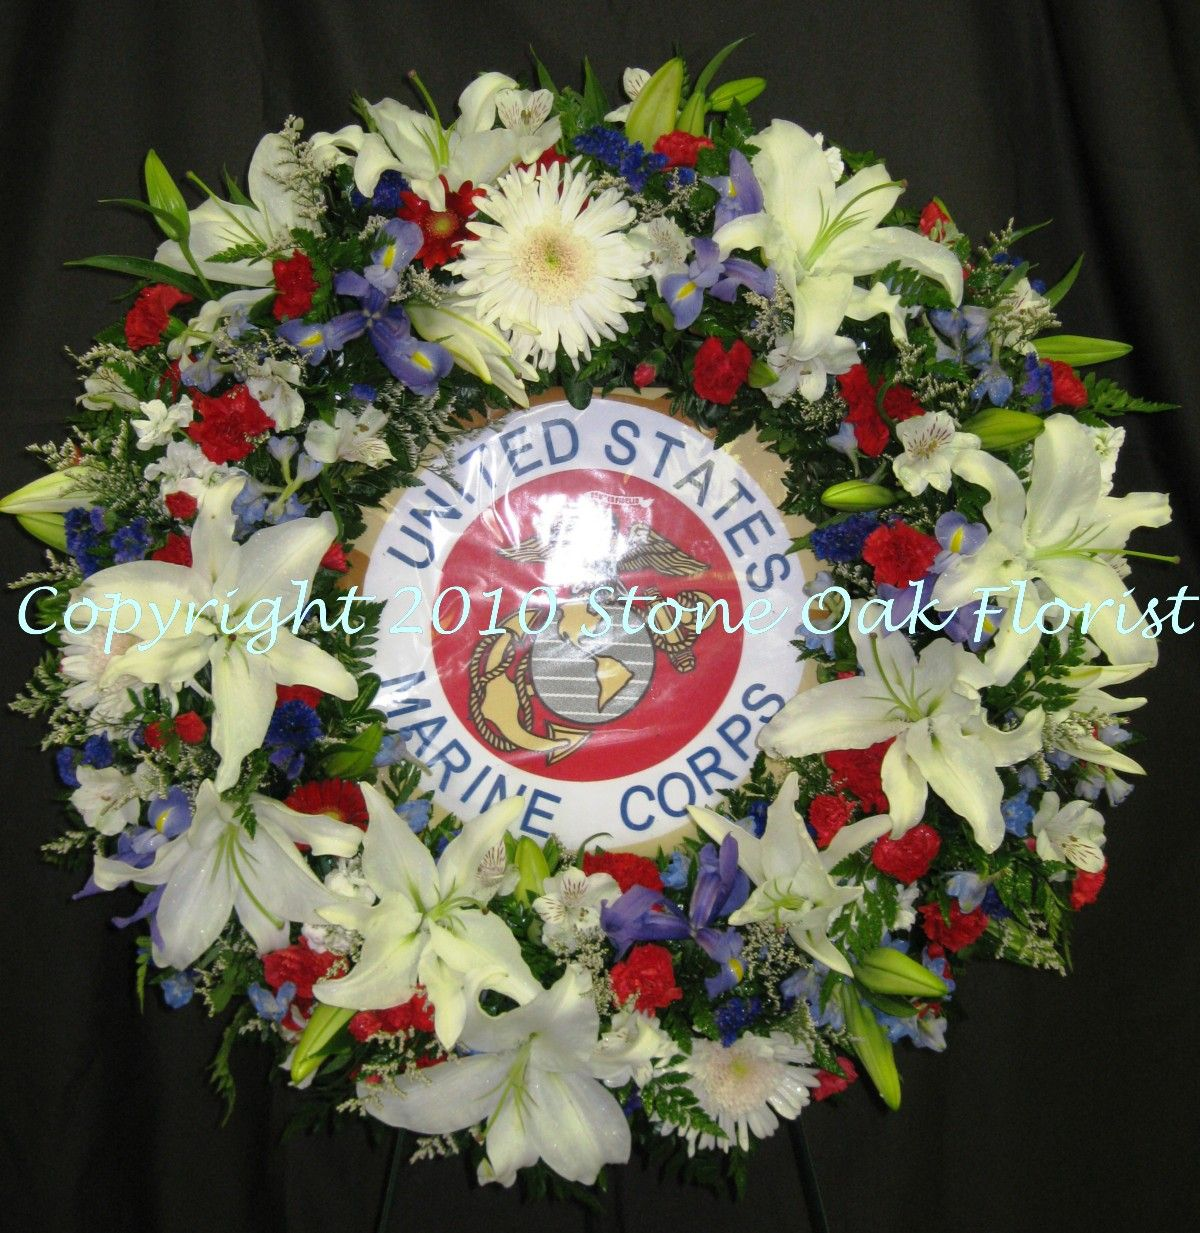 1-800-flowers.com Announces Special Offer For Military ... |Military Funeral Flag Flowers